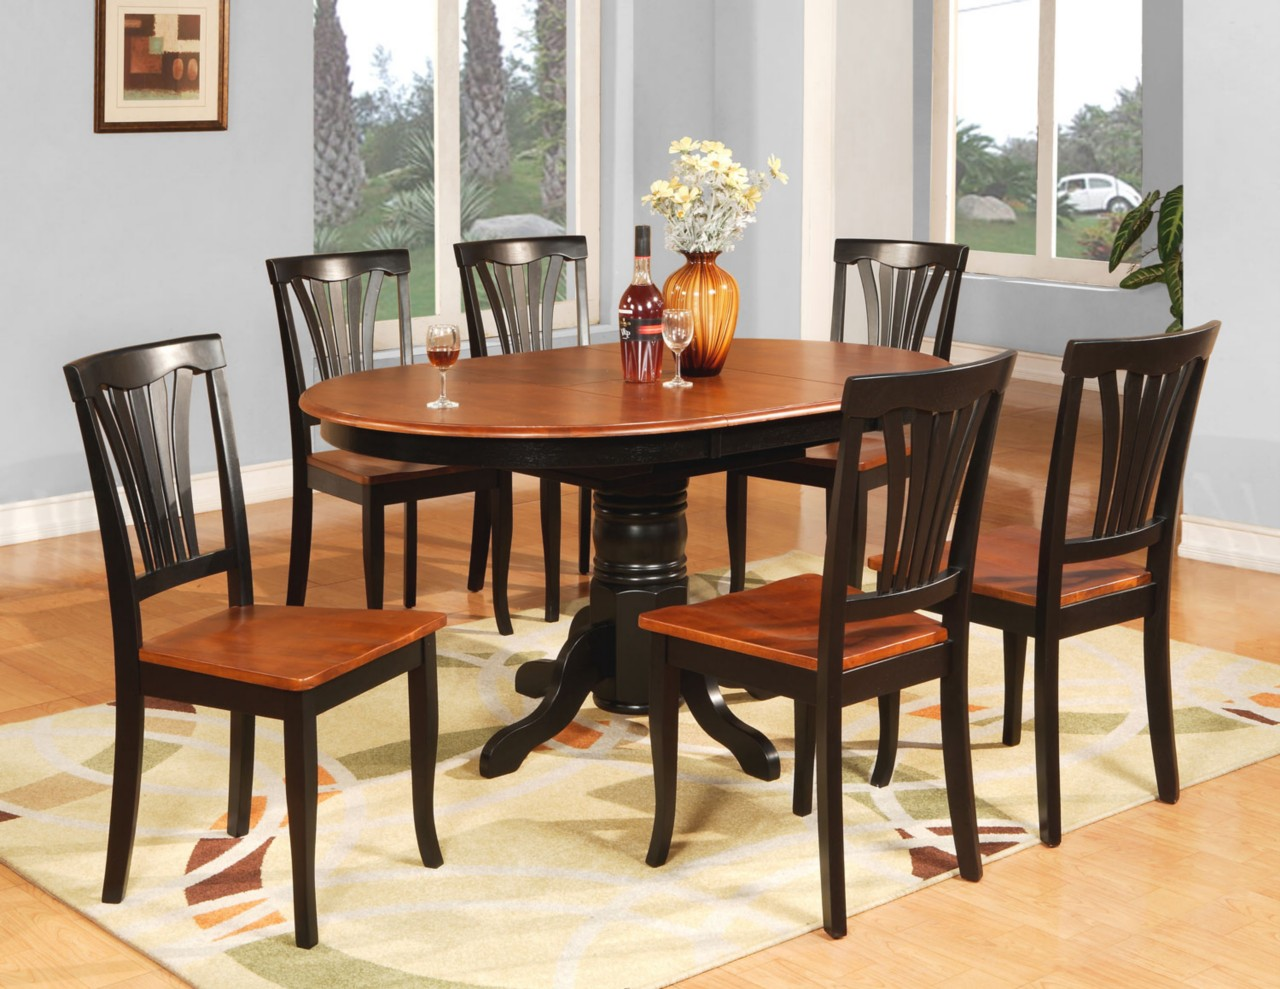 Kitchen And Dining Room Chairs 7 Pc Oval Dinette Kitchen Dining Room Table And 6 Chairs Ebay